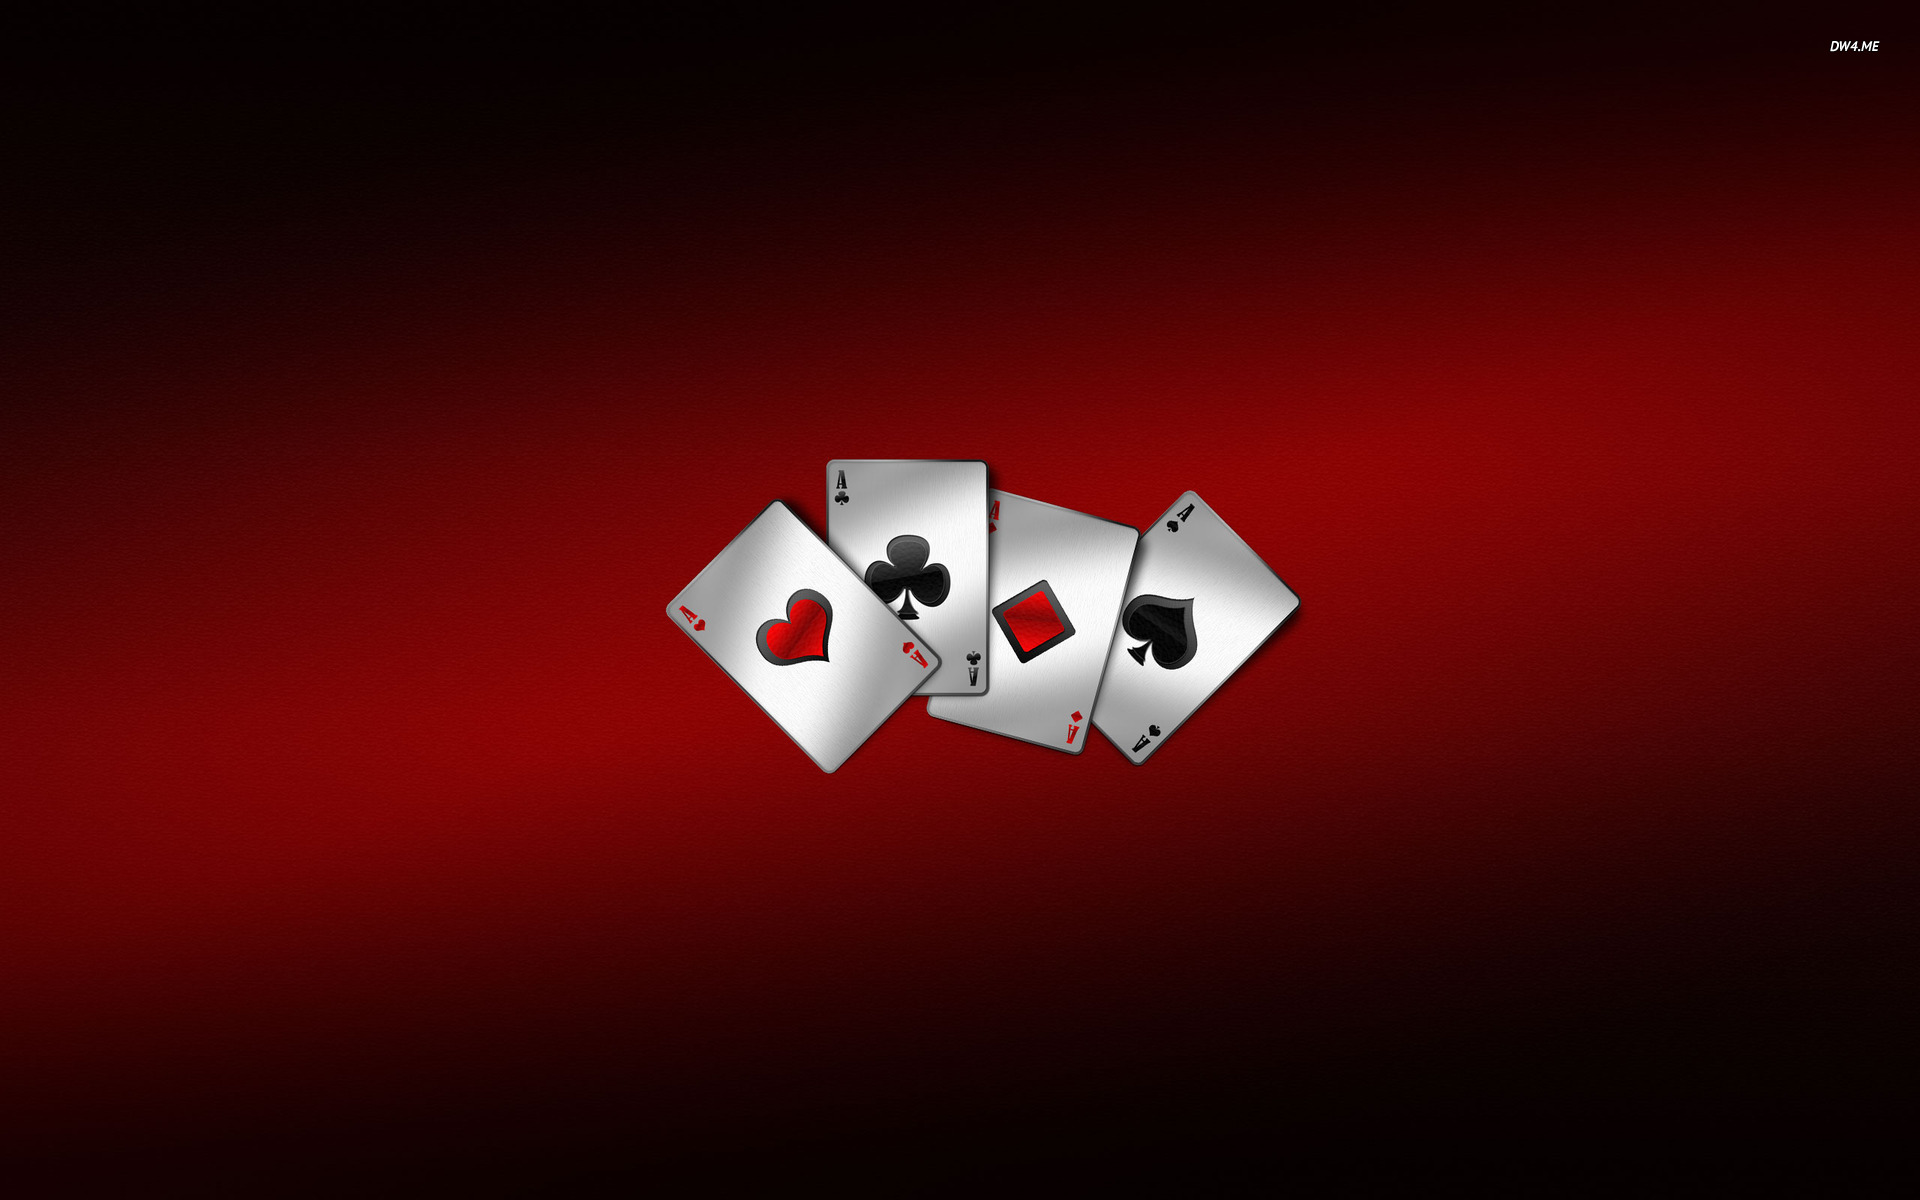 Aces Playing Cards Wallpaper Aces wallpaper 1920x1200 1920x1200